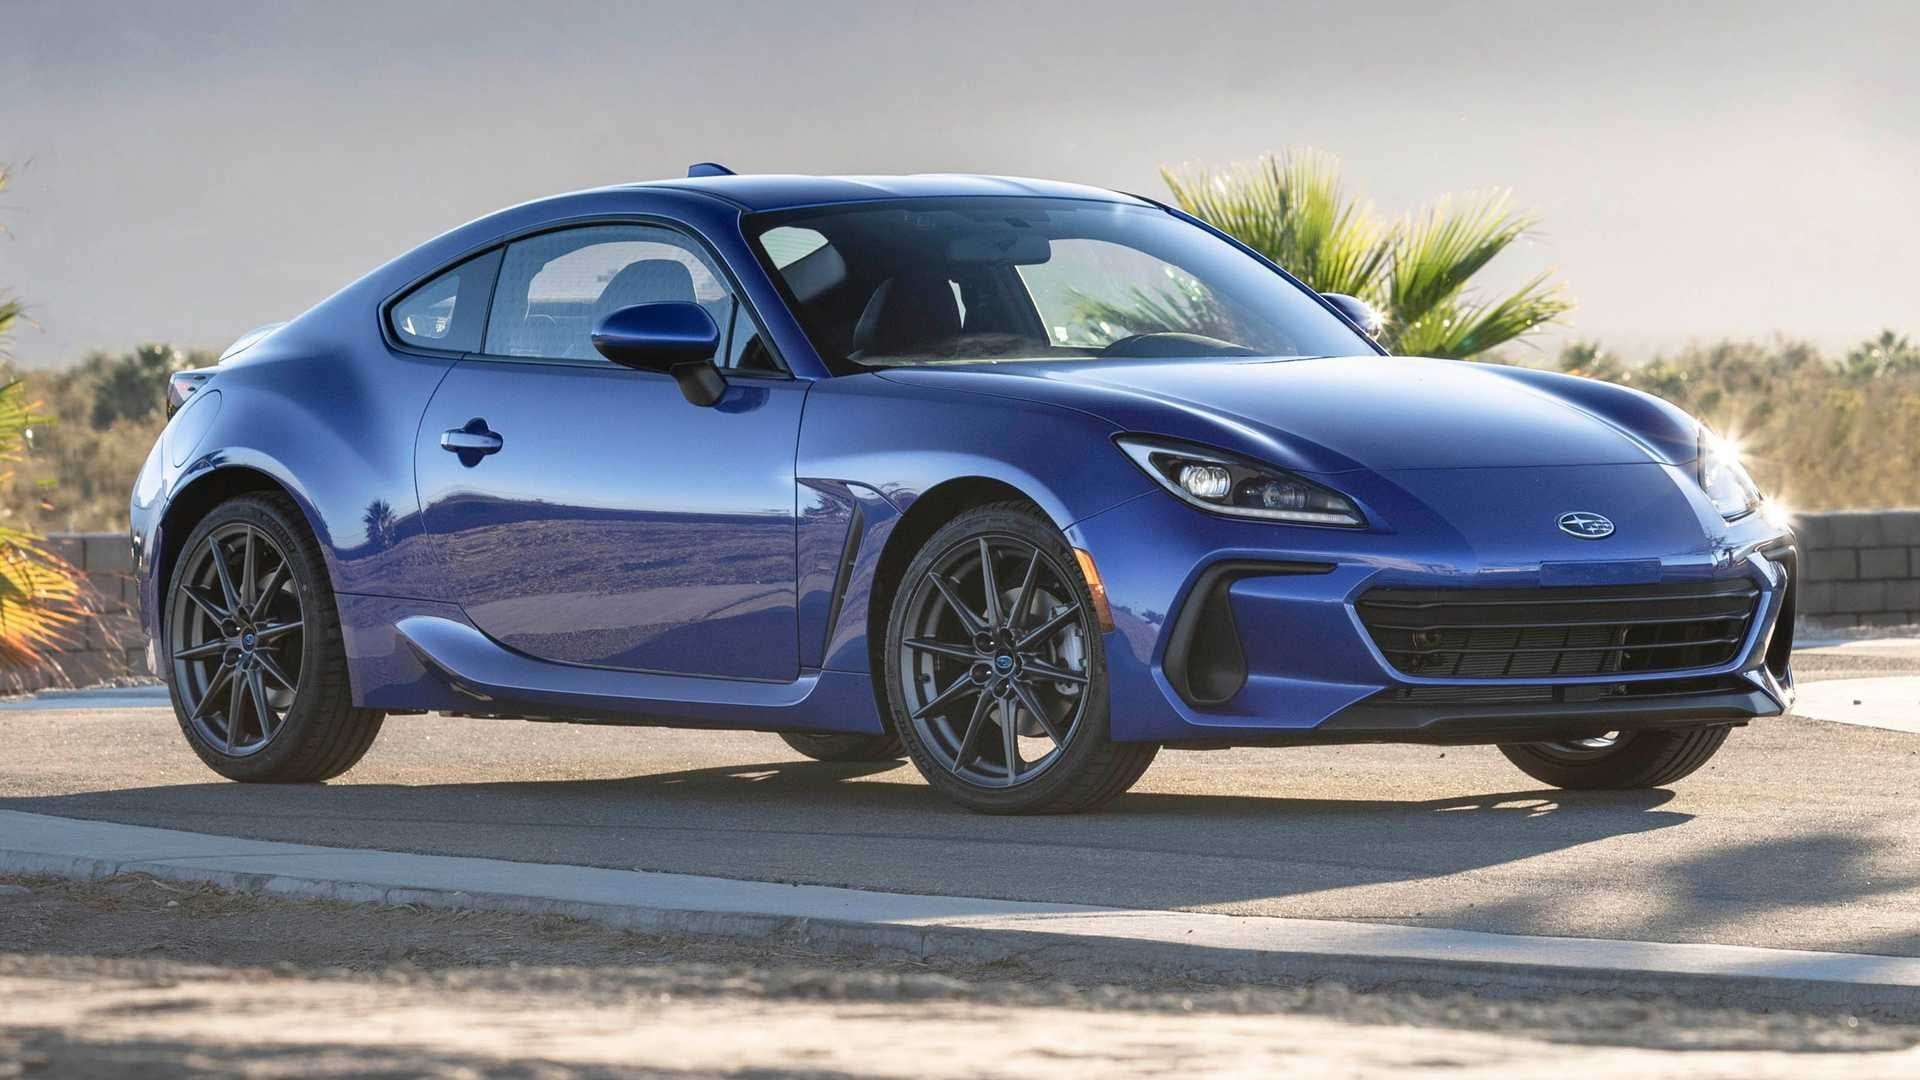 2021 Subaru BRZ Front and Side View